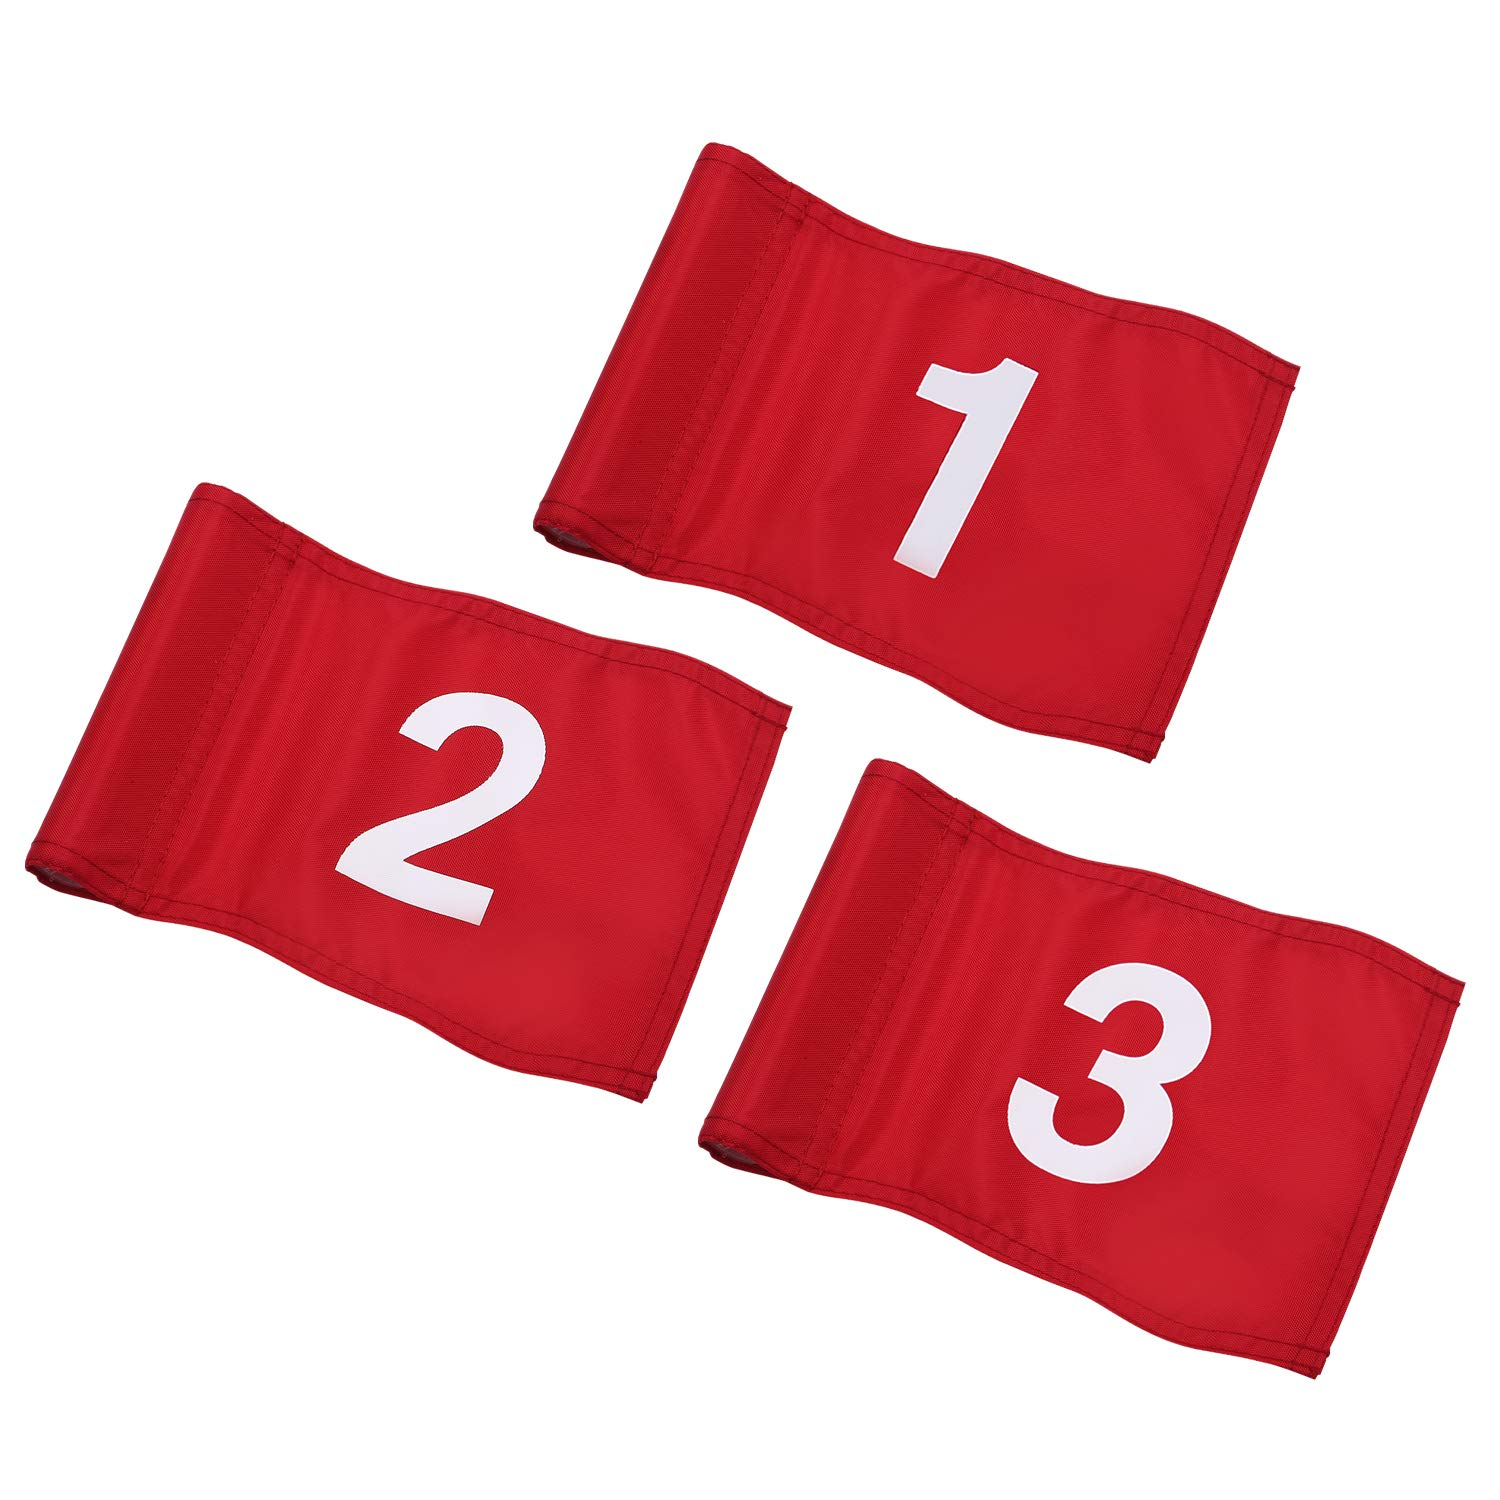 KINGTOP Numbered Golf Flag with Tube Inserted, All 8'' L x 6'', Putting Green Flags for Yard, 420D Nylon Mini Pin Flags by KINGTOP